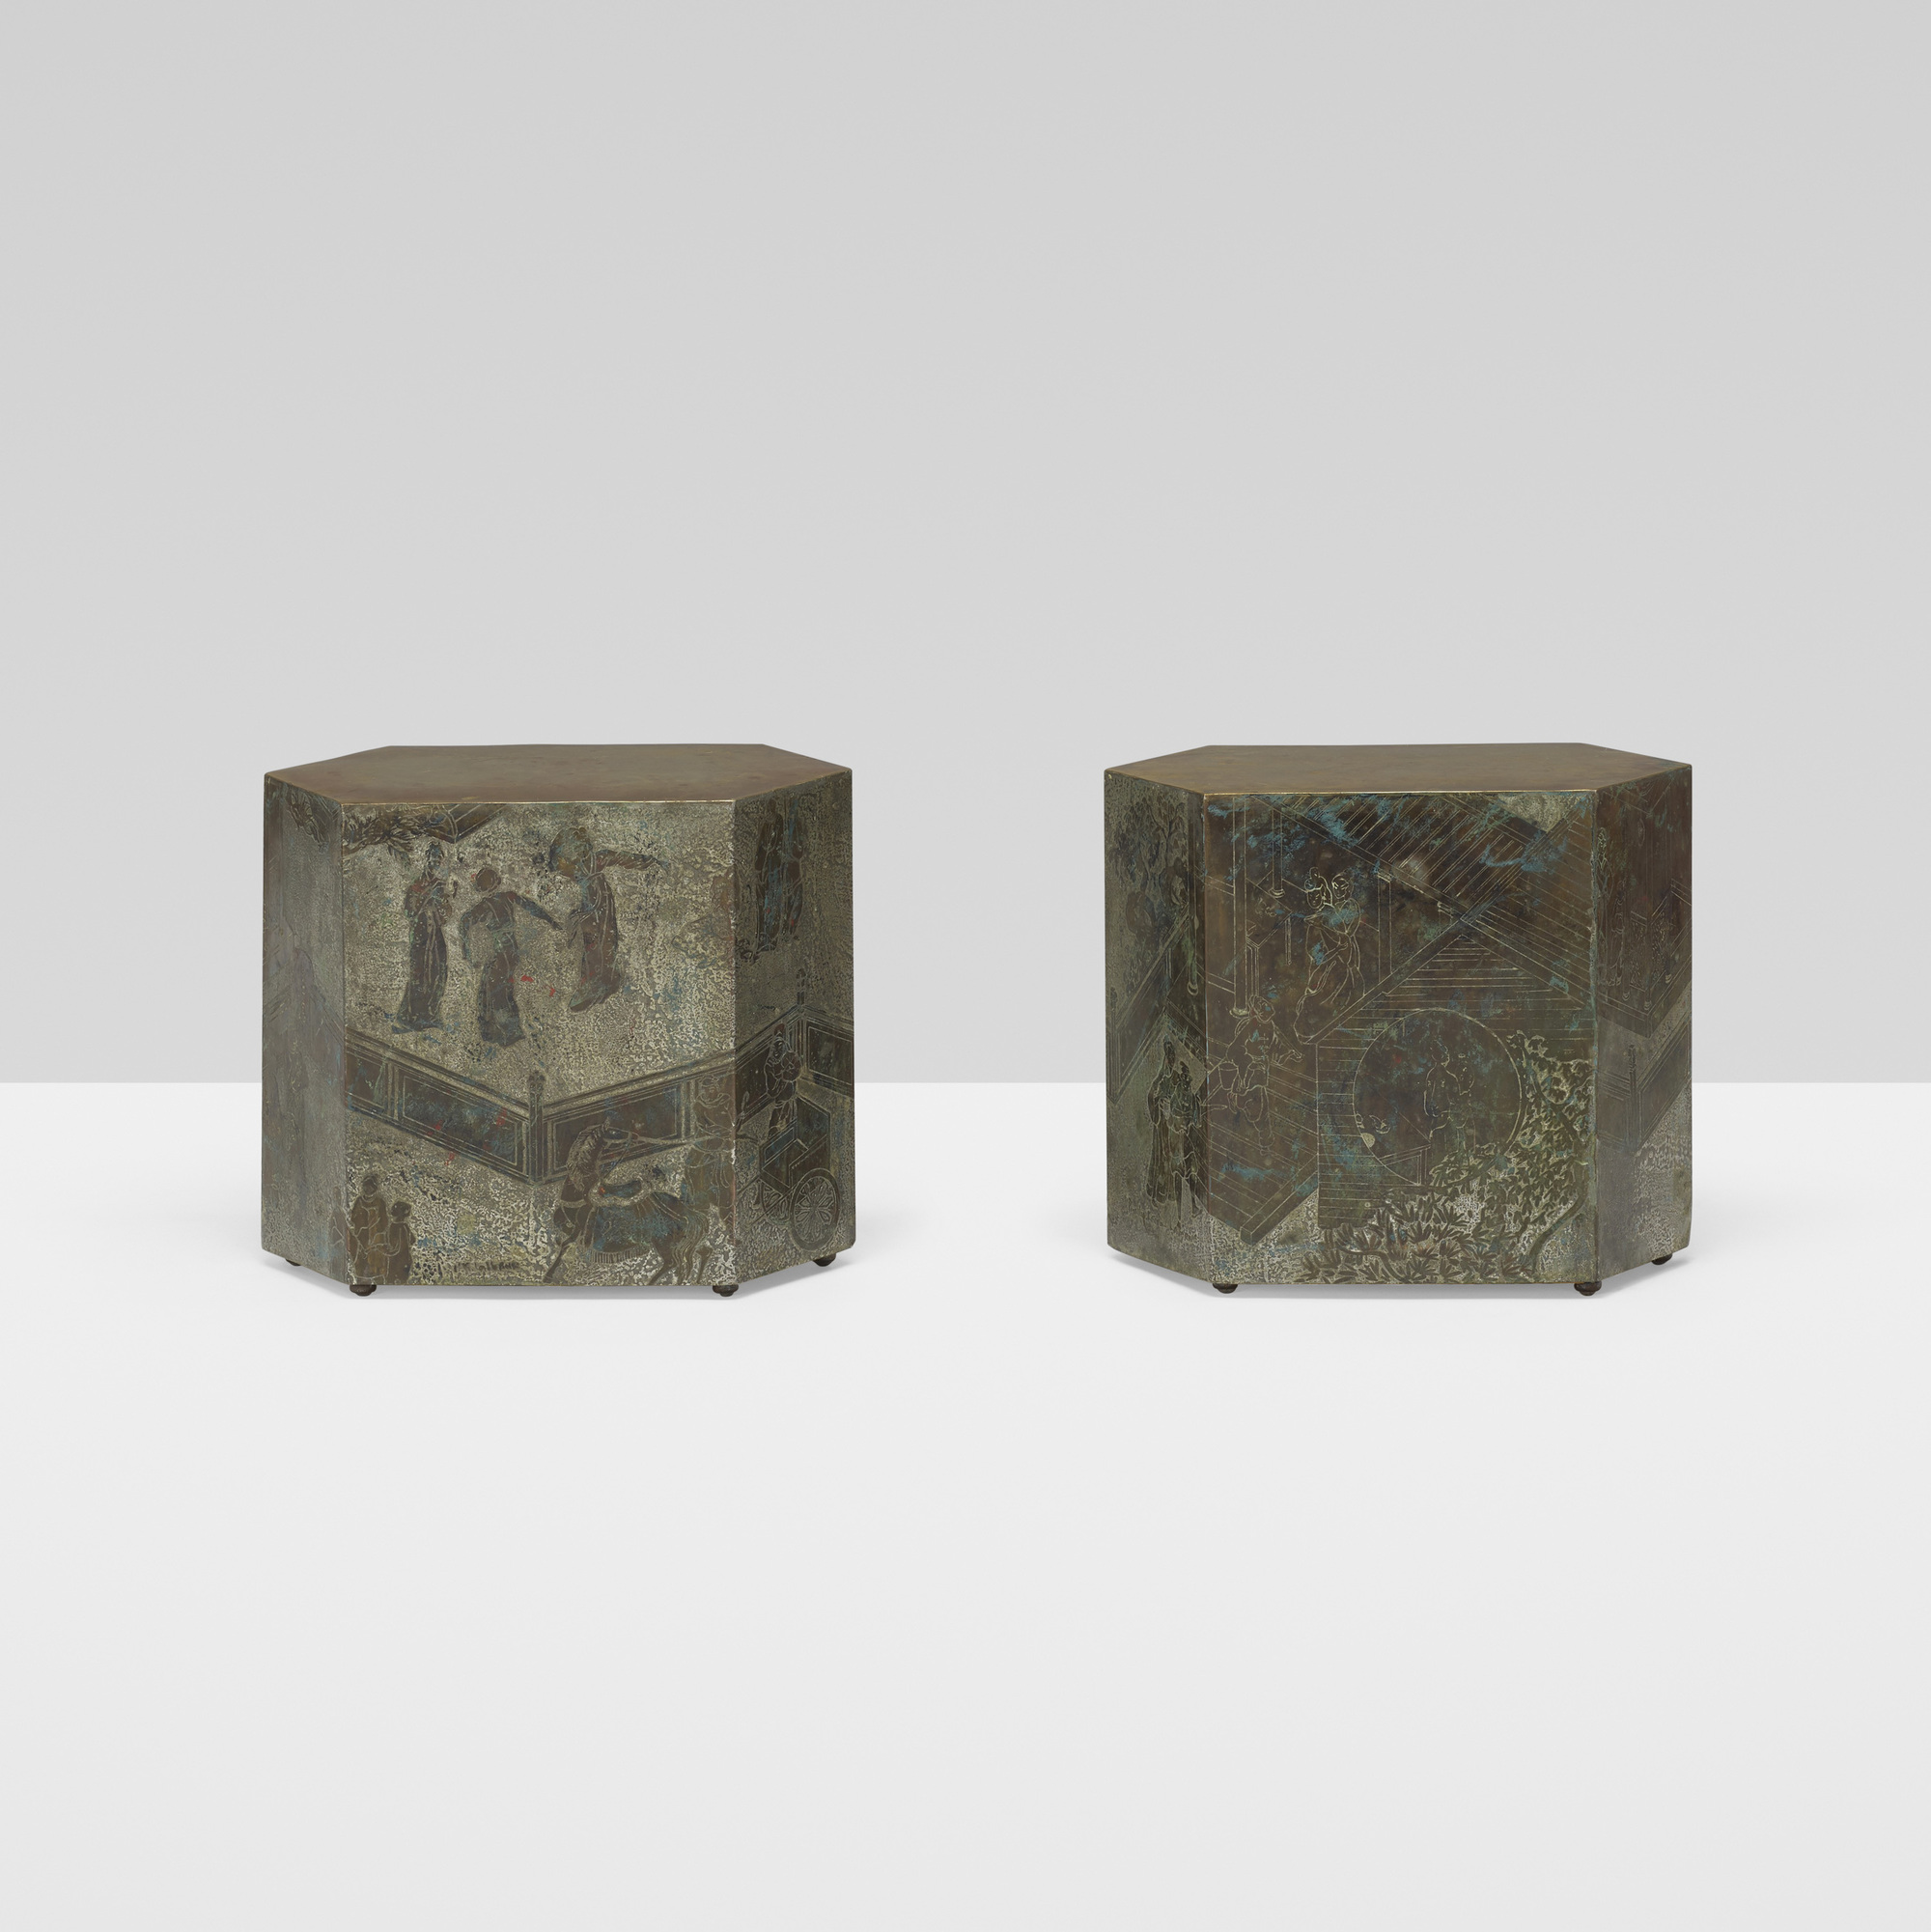 402: Philip and Kelvin LaVerne / Chan occasional tables, pair (2 of 5)